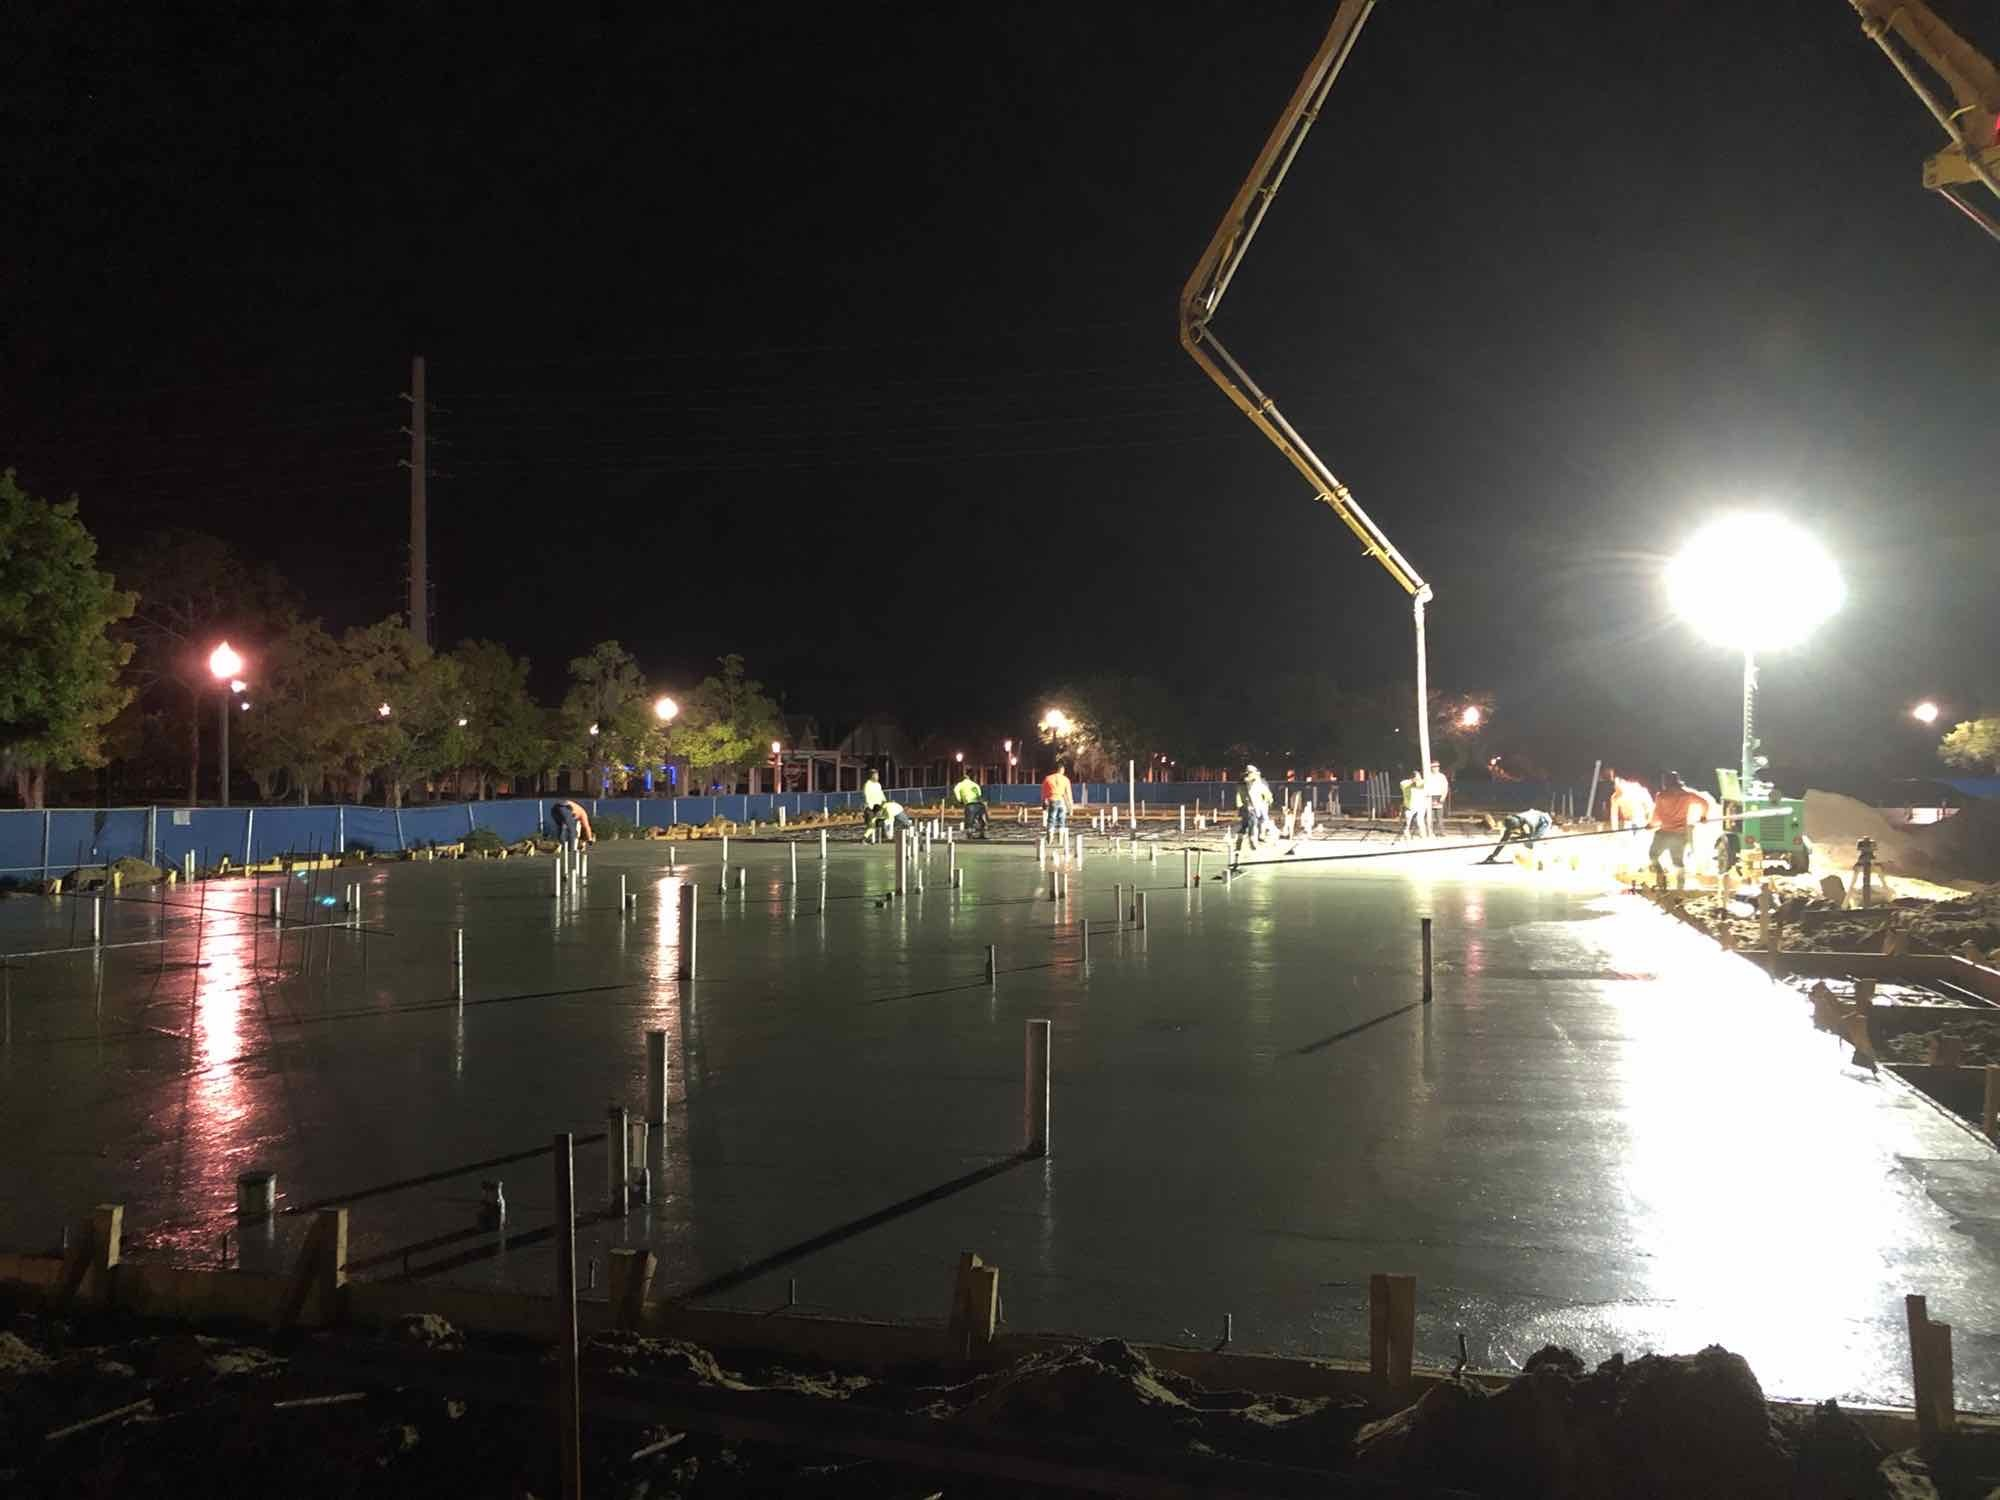 Concrete being poured by overhead crane.